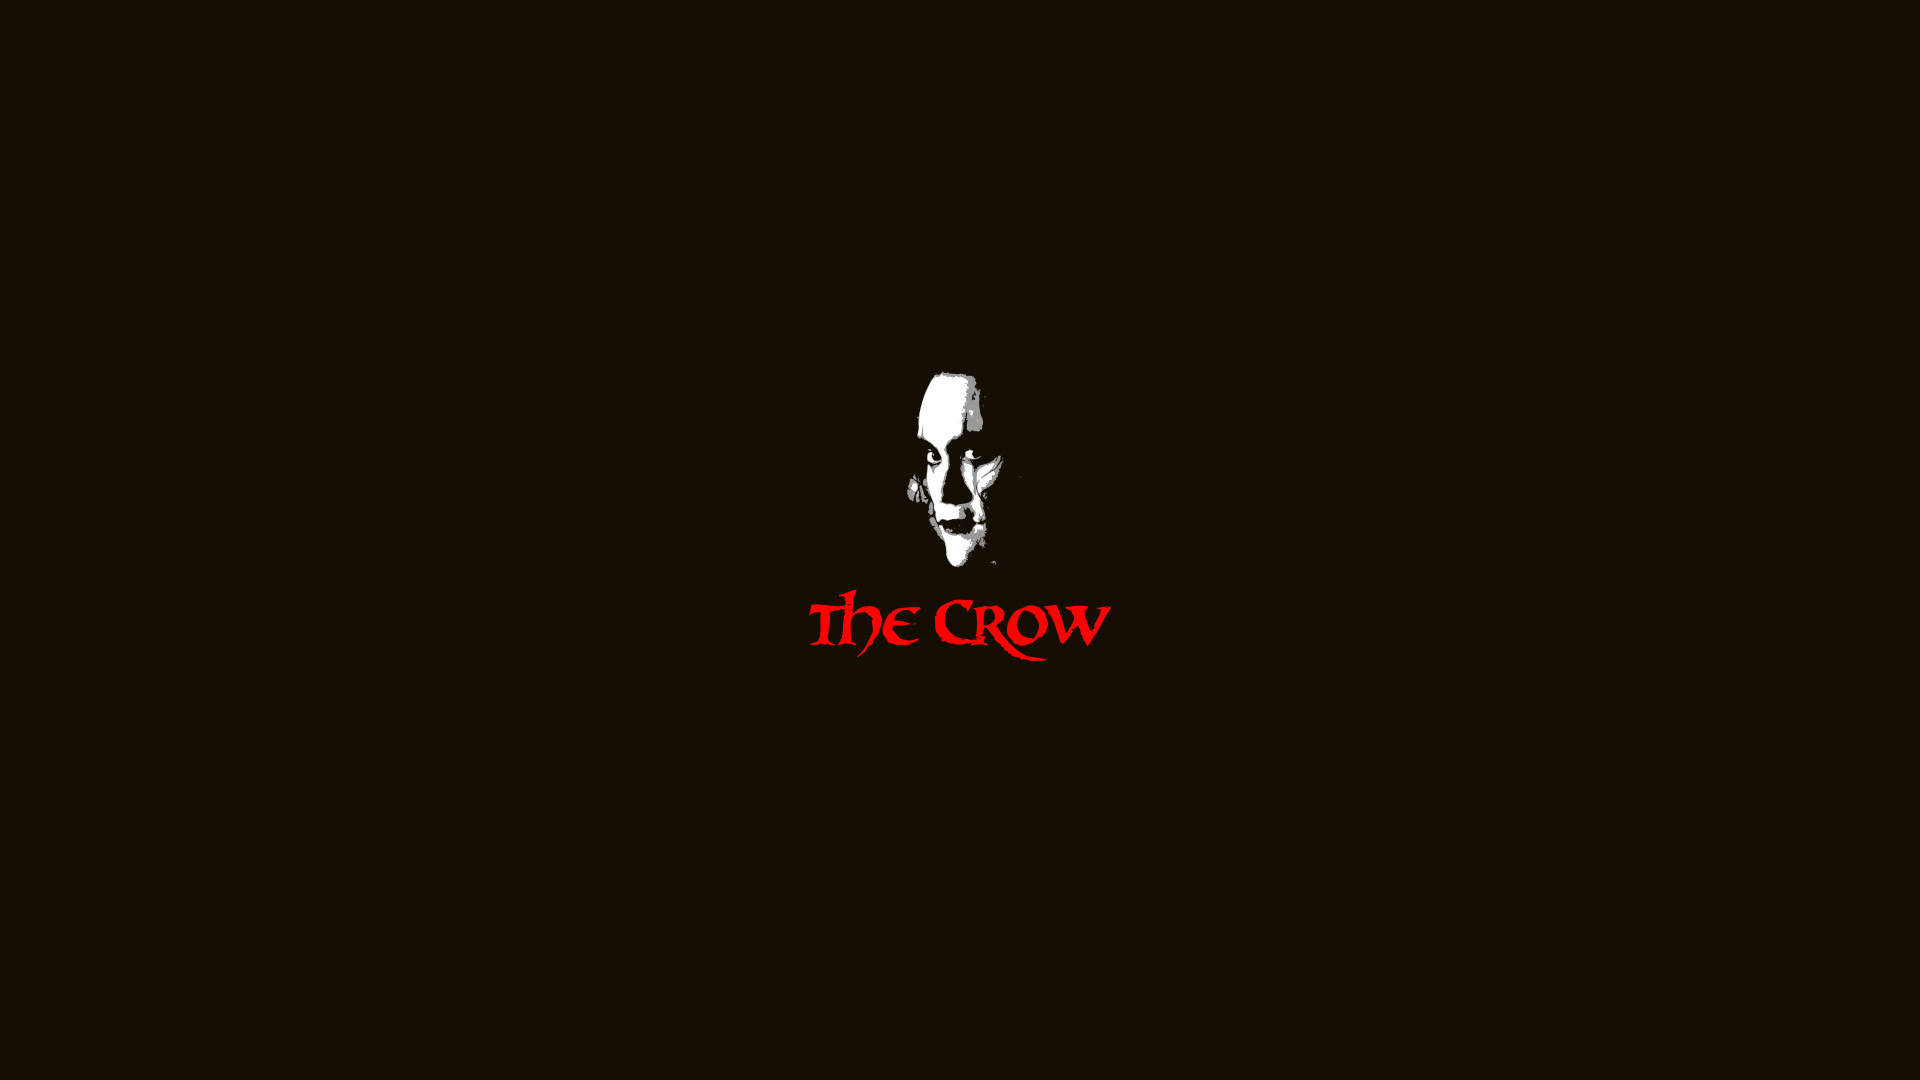 download Brandon Lee crows action fantasy movie The crow 1920x1080